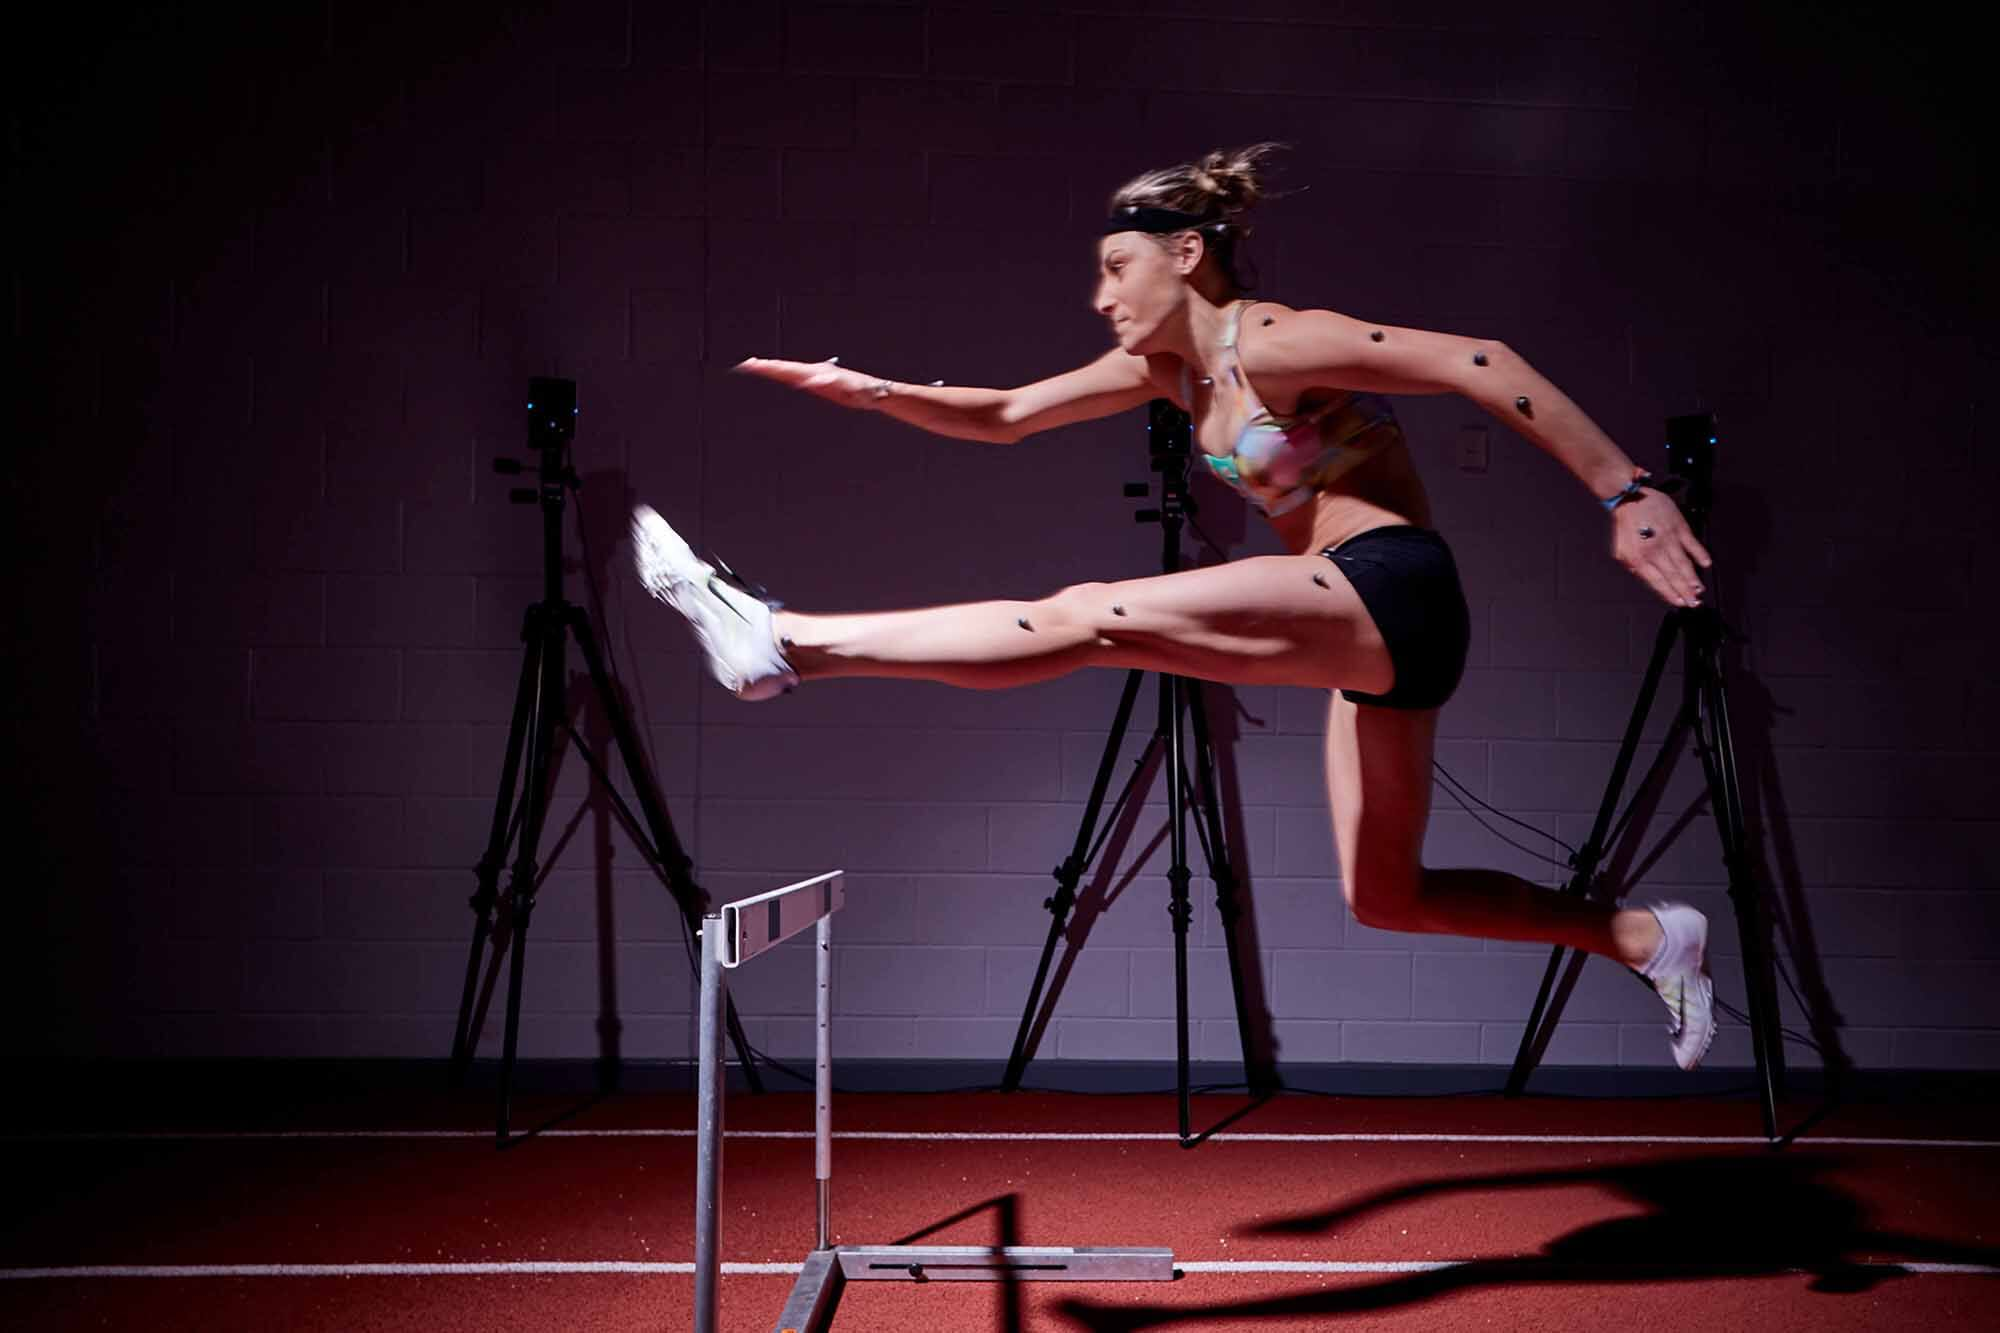 A female jumping over a hurdle